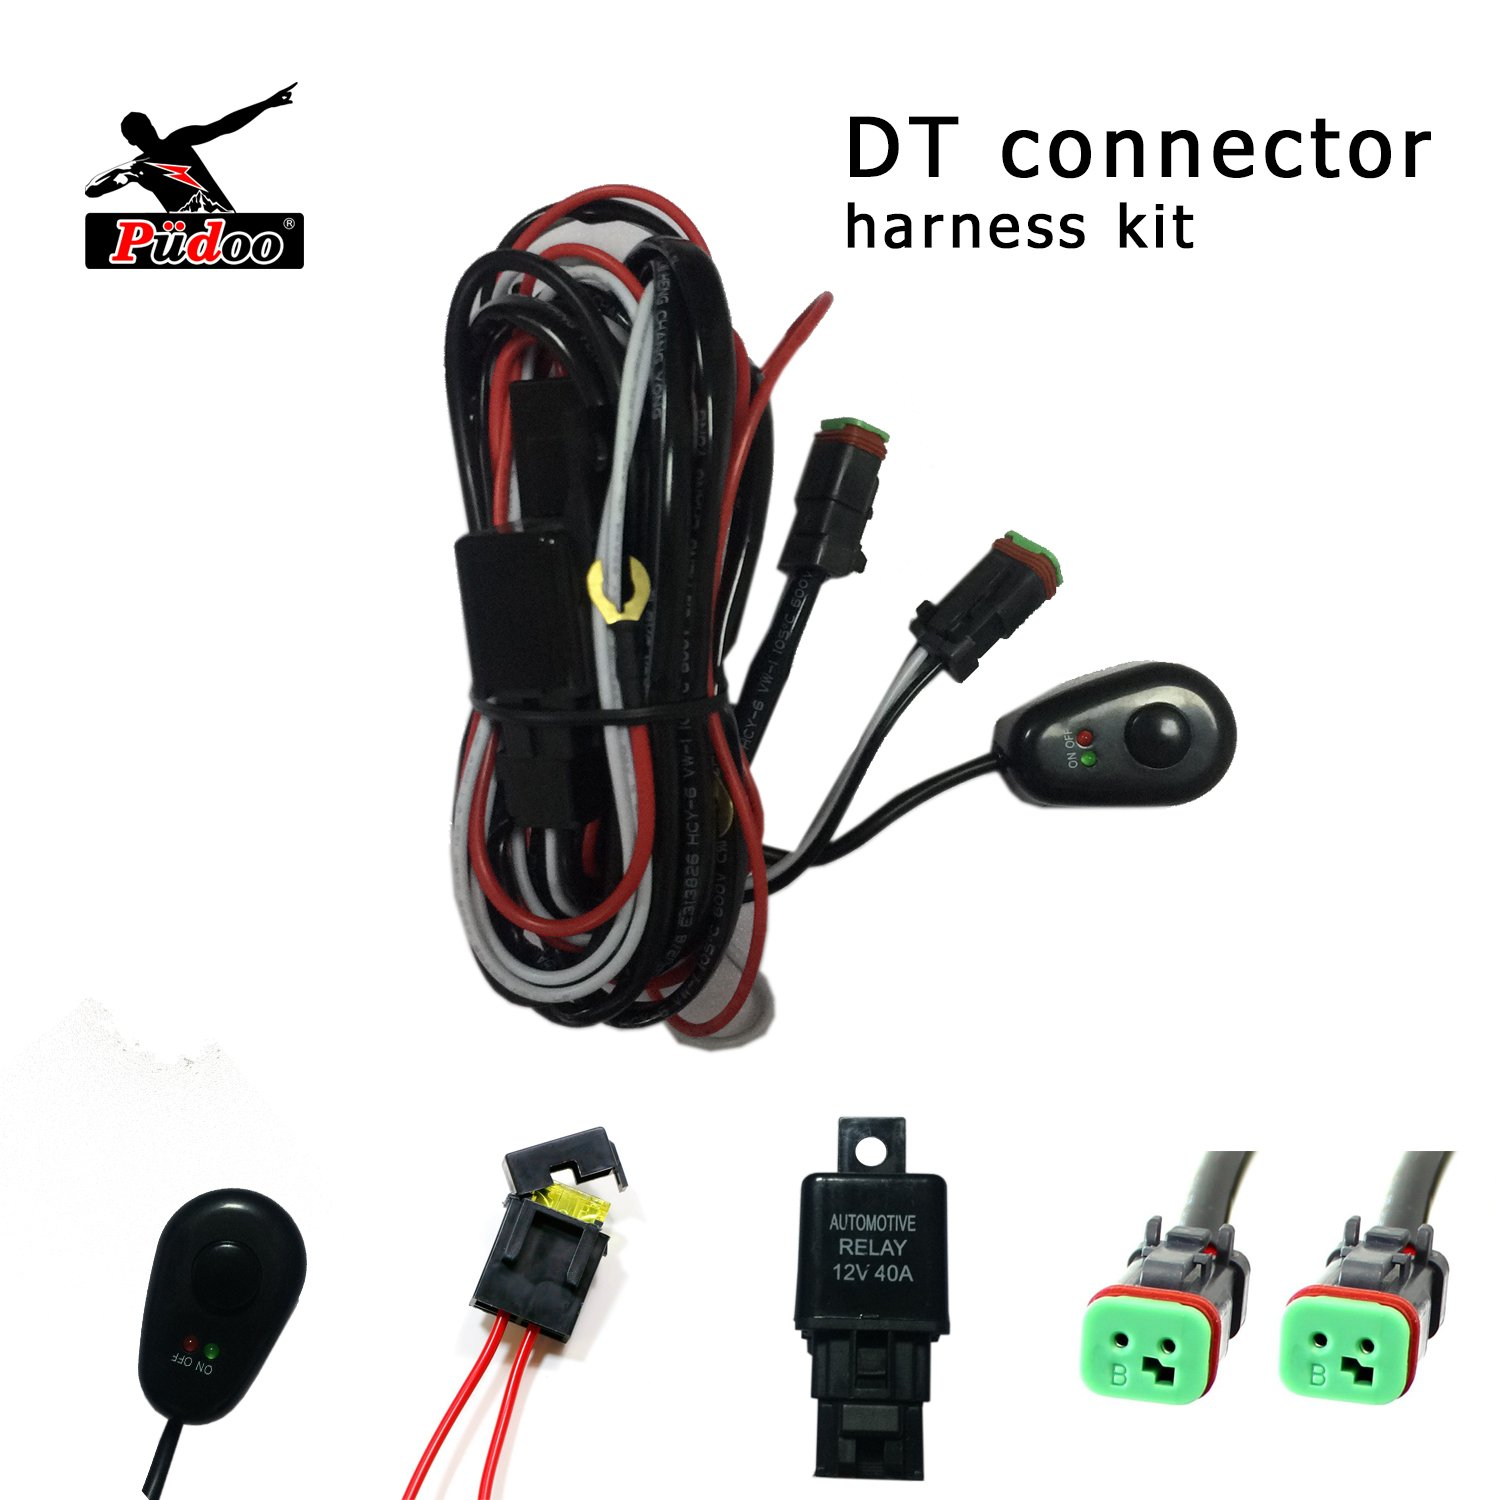 Pudoo Deutsch Wiring Harness Kit 12V 40Amp Fuse Relay ON/OFF Switch for Driving  Light